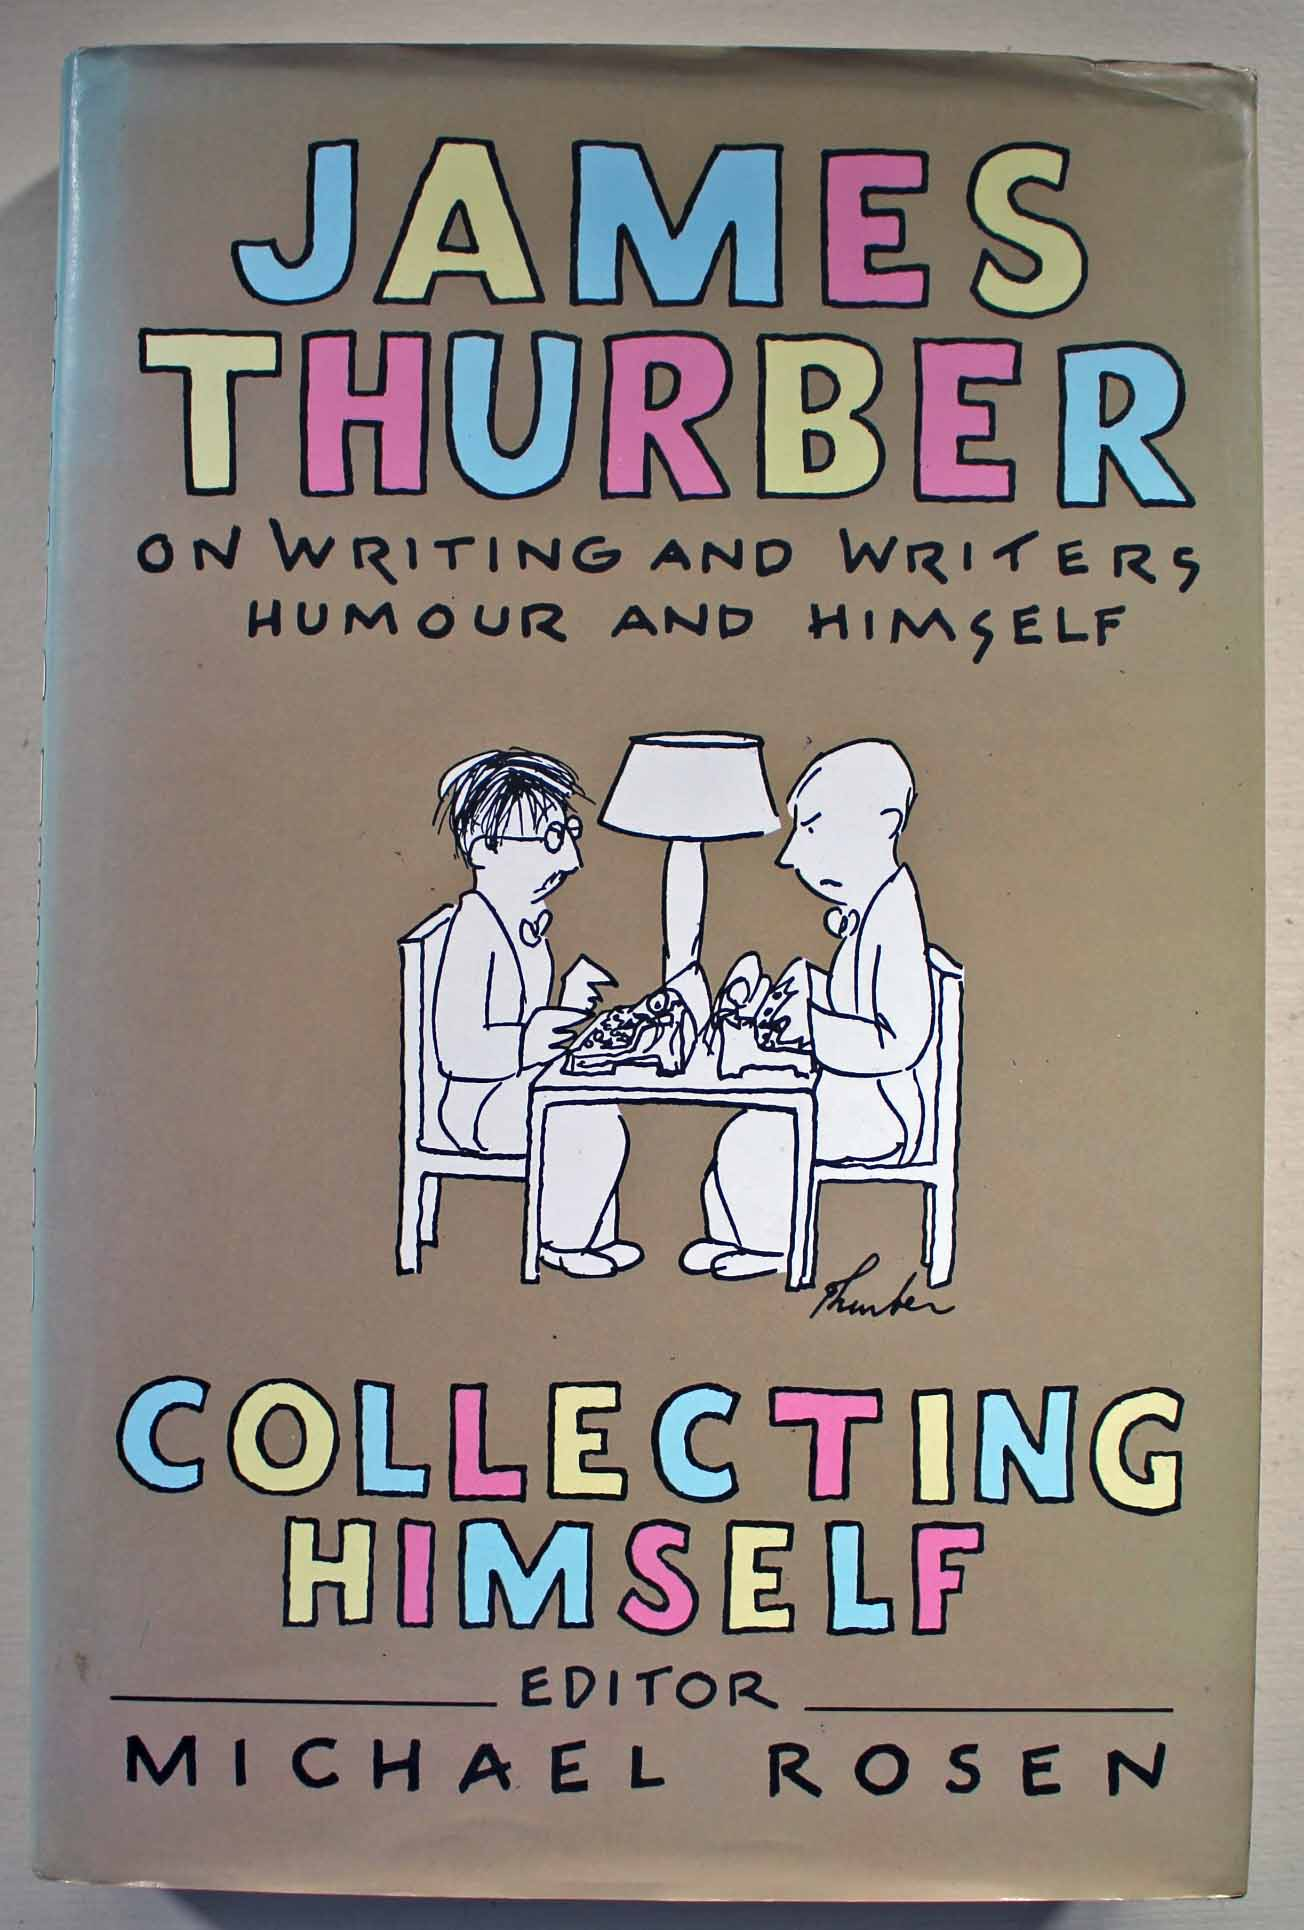 Home dear mr kourouma - Collecting Himself James Thurber On Writing And Writers Humour And Himself